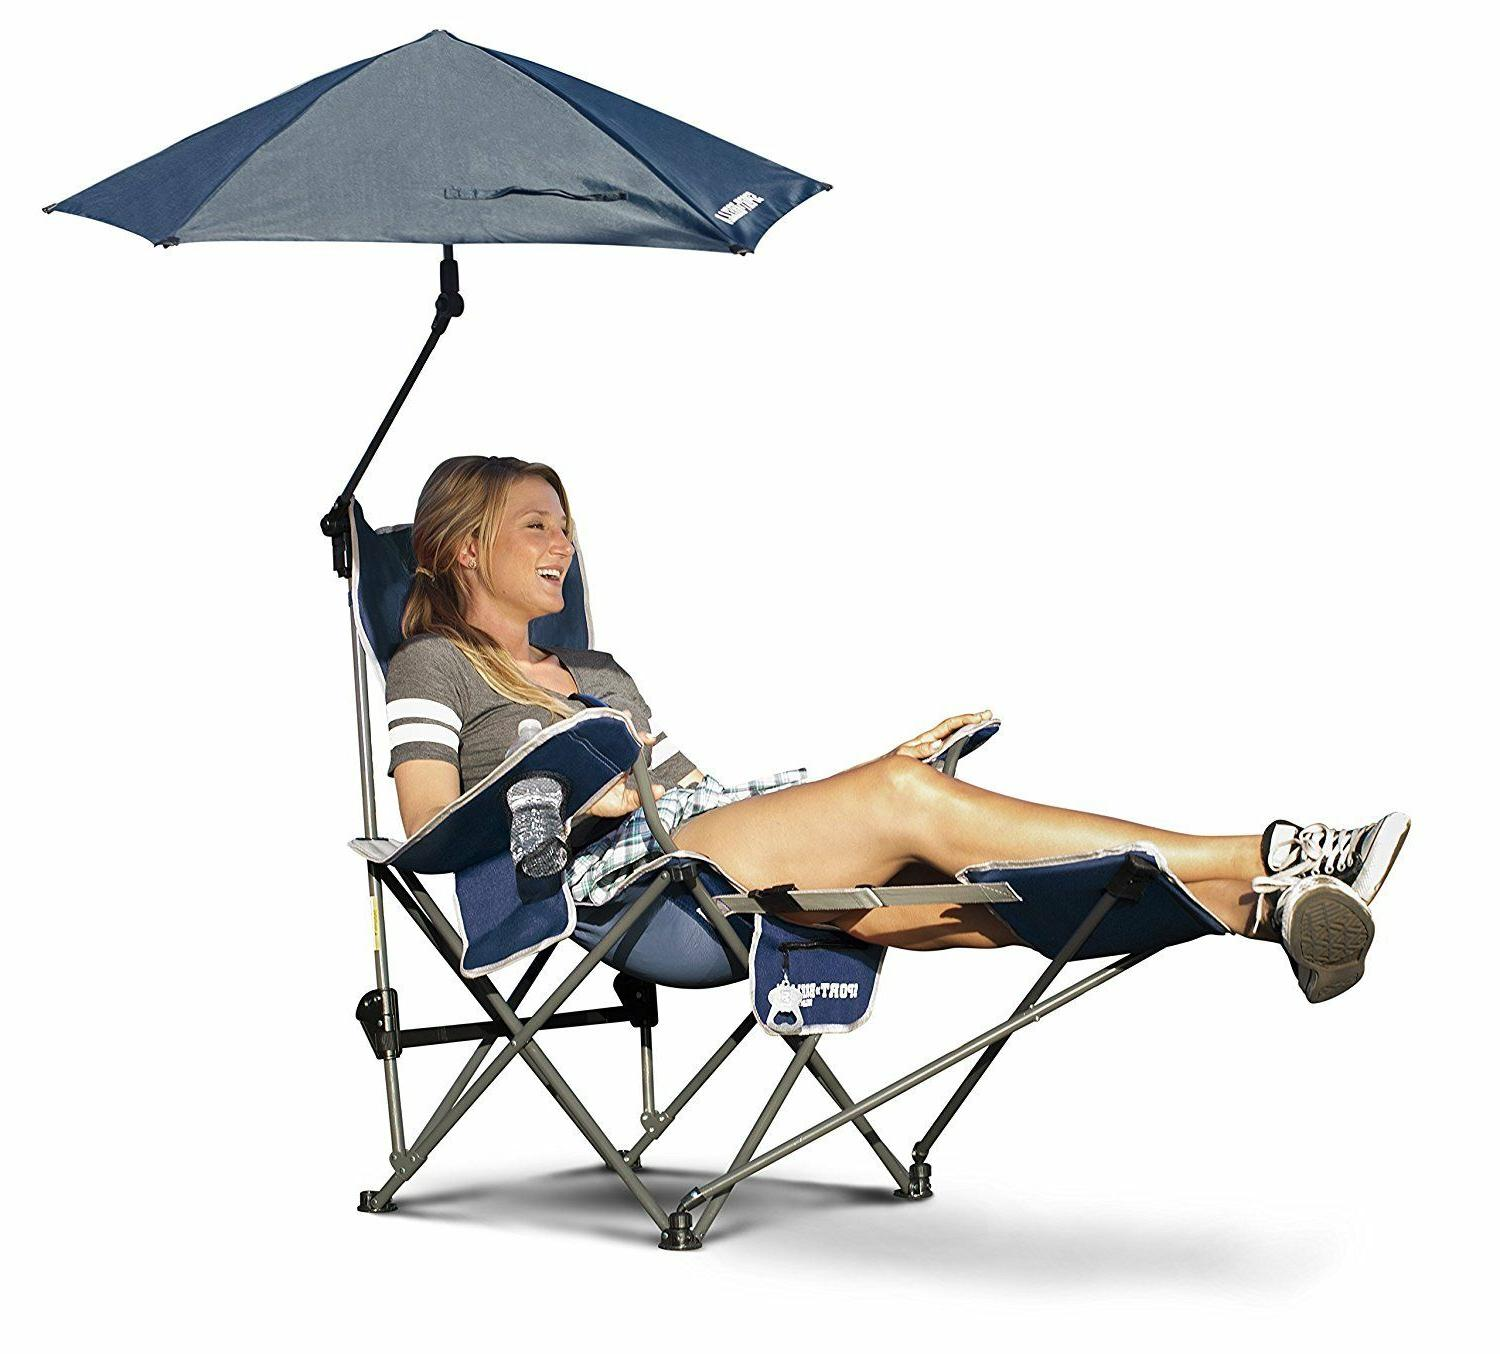 recliner chair with umbrella easy to carry